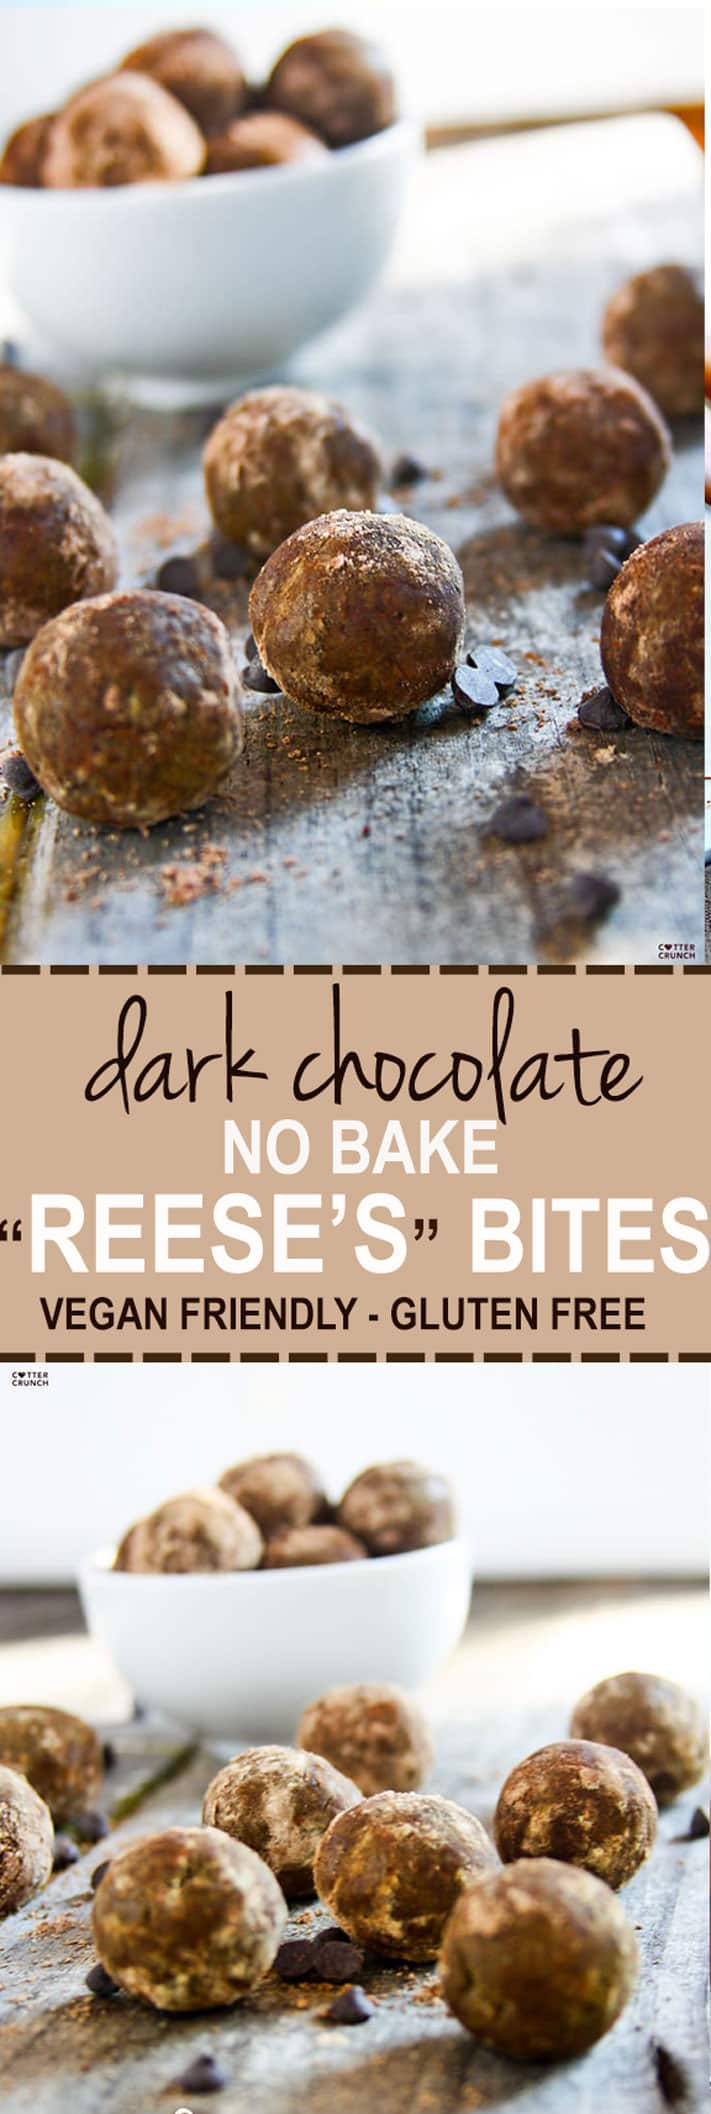 grain free dark chocolate cocoa Reese's protein bites recipe! a superfood snack that's delicious, no bake, and protein packed! Real food ingredients that taste REAL GOOD! #vegan friendly